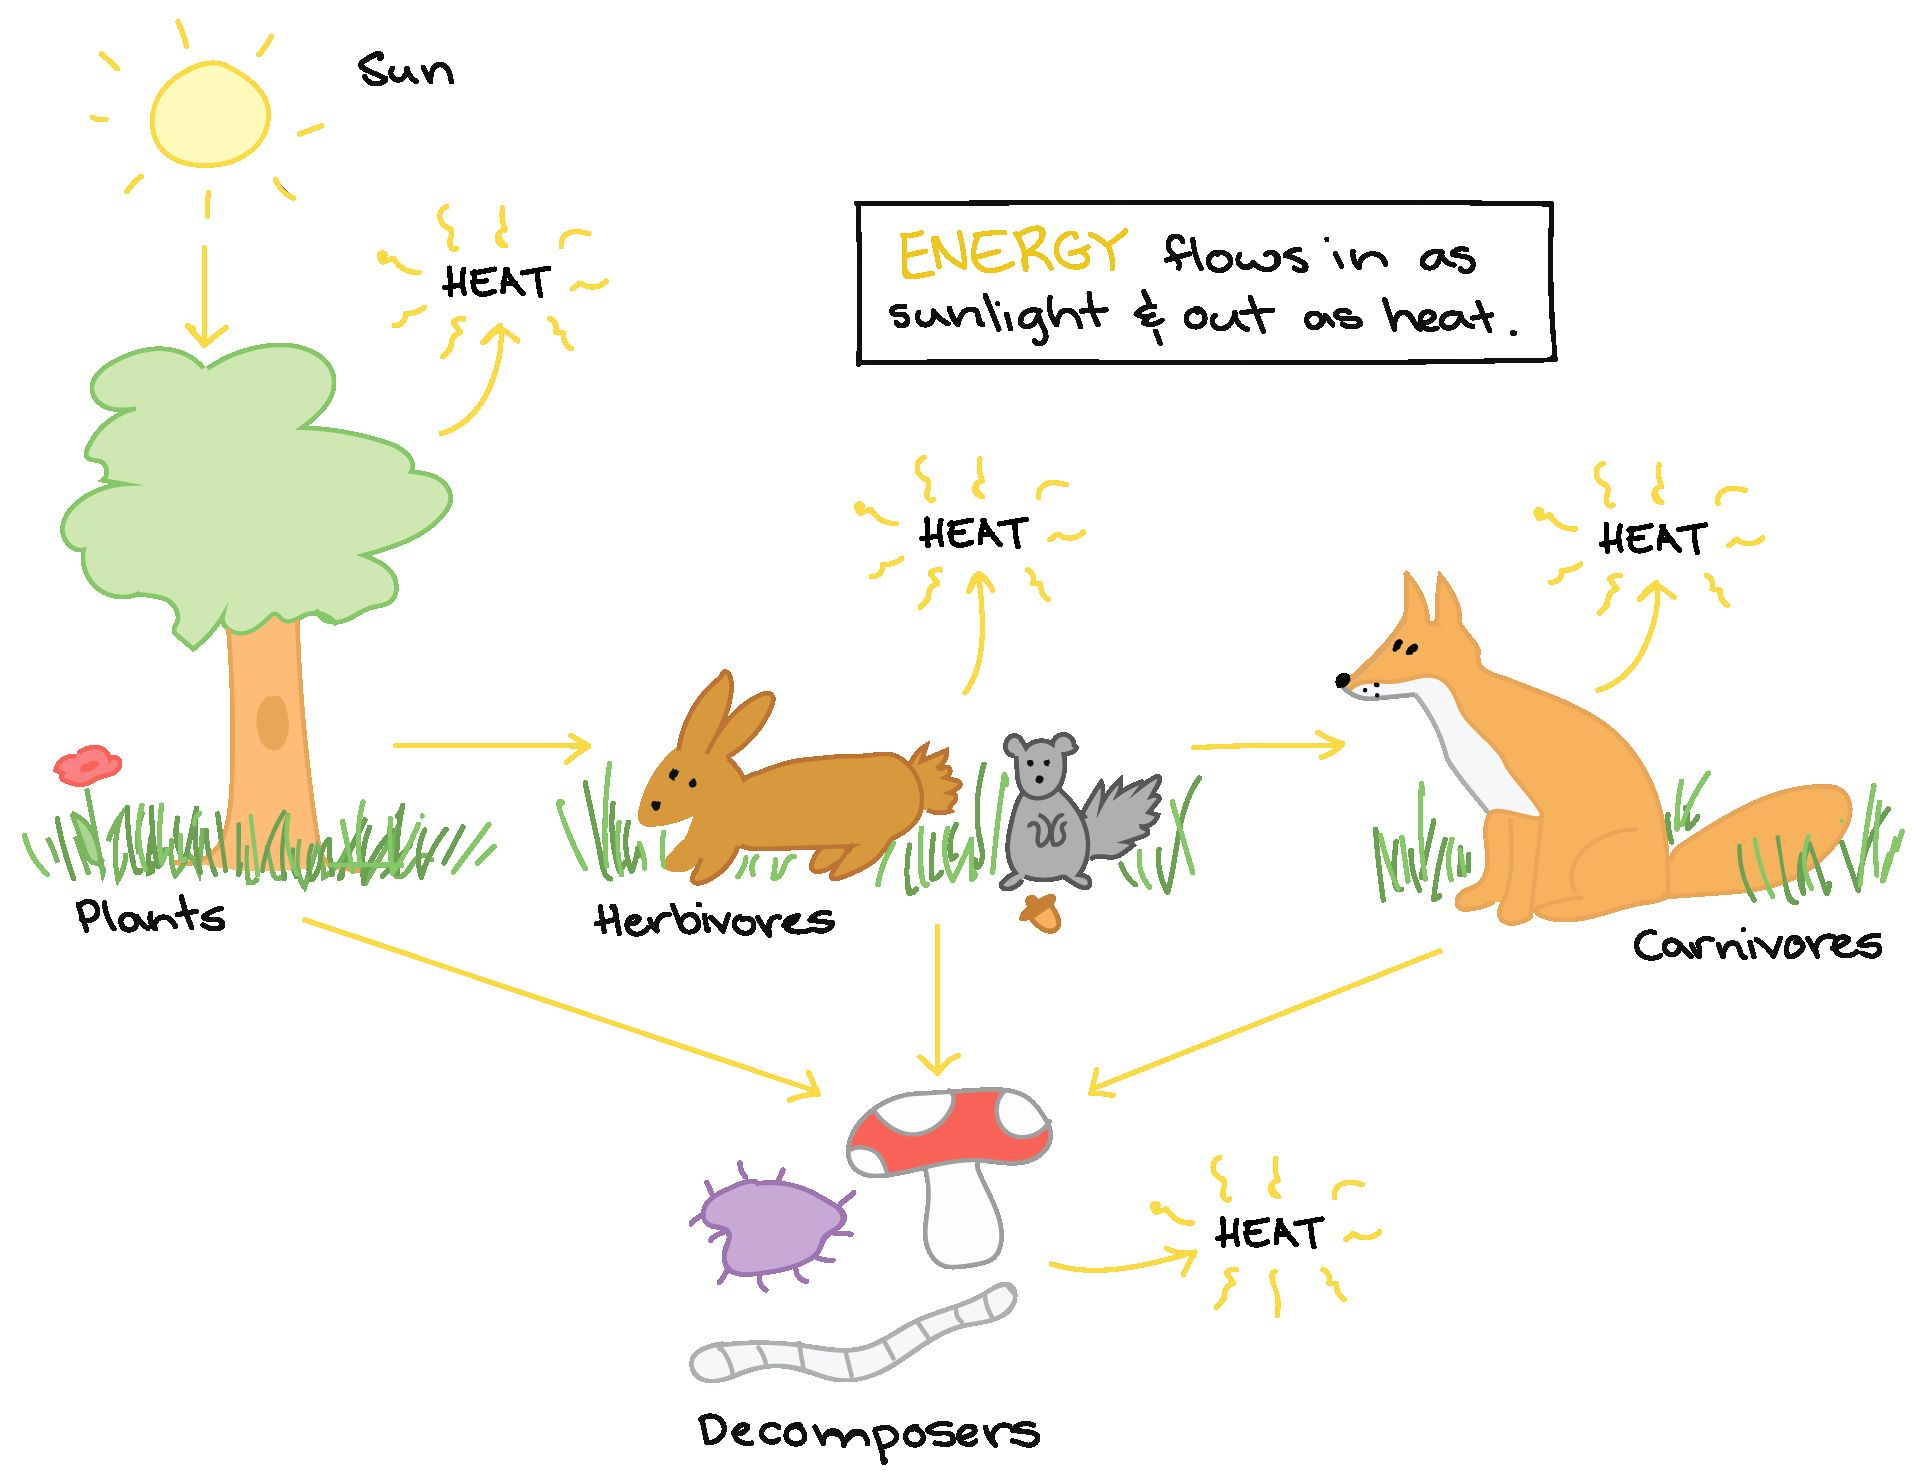 Energy Flow In Ecosystems Worksheet Beautiful Energy Flow In An Ecosystem Worksheet Answers Biozone In 2020 Ecosystems High School Earth Science Energy Flow